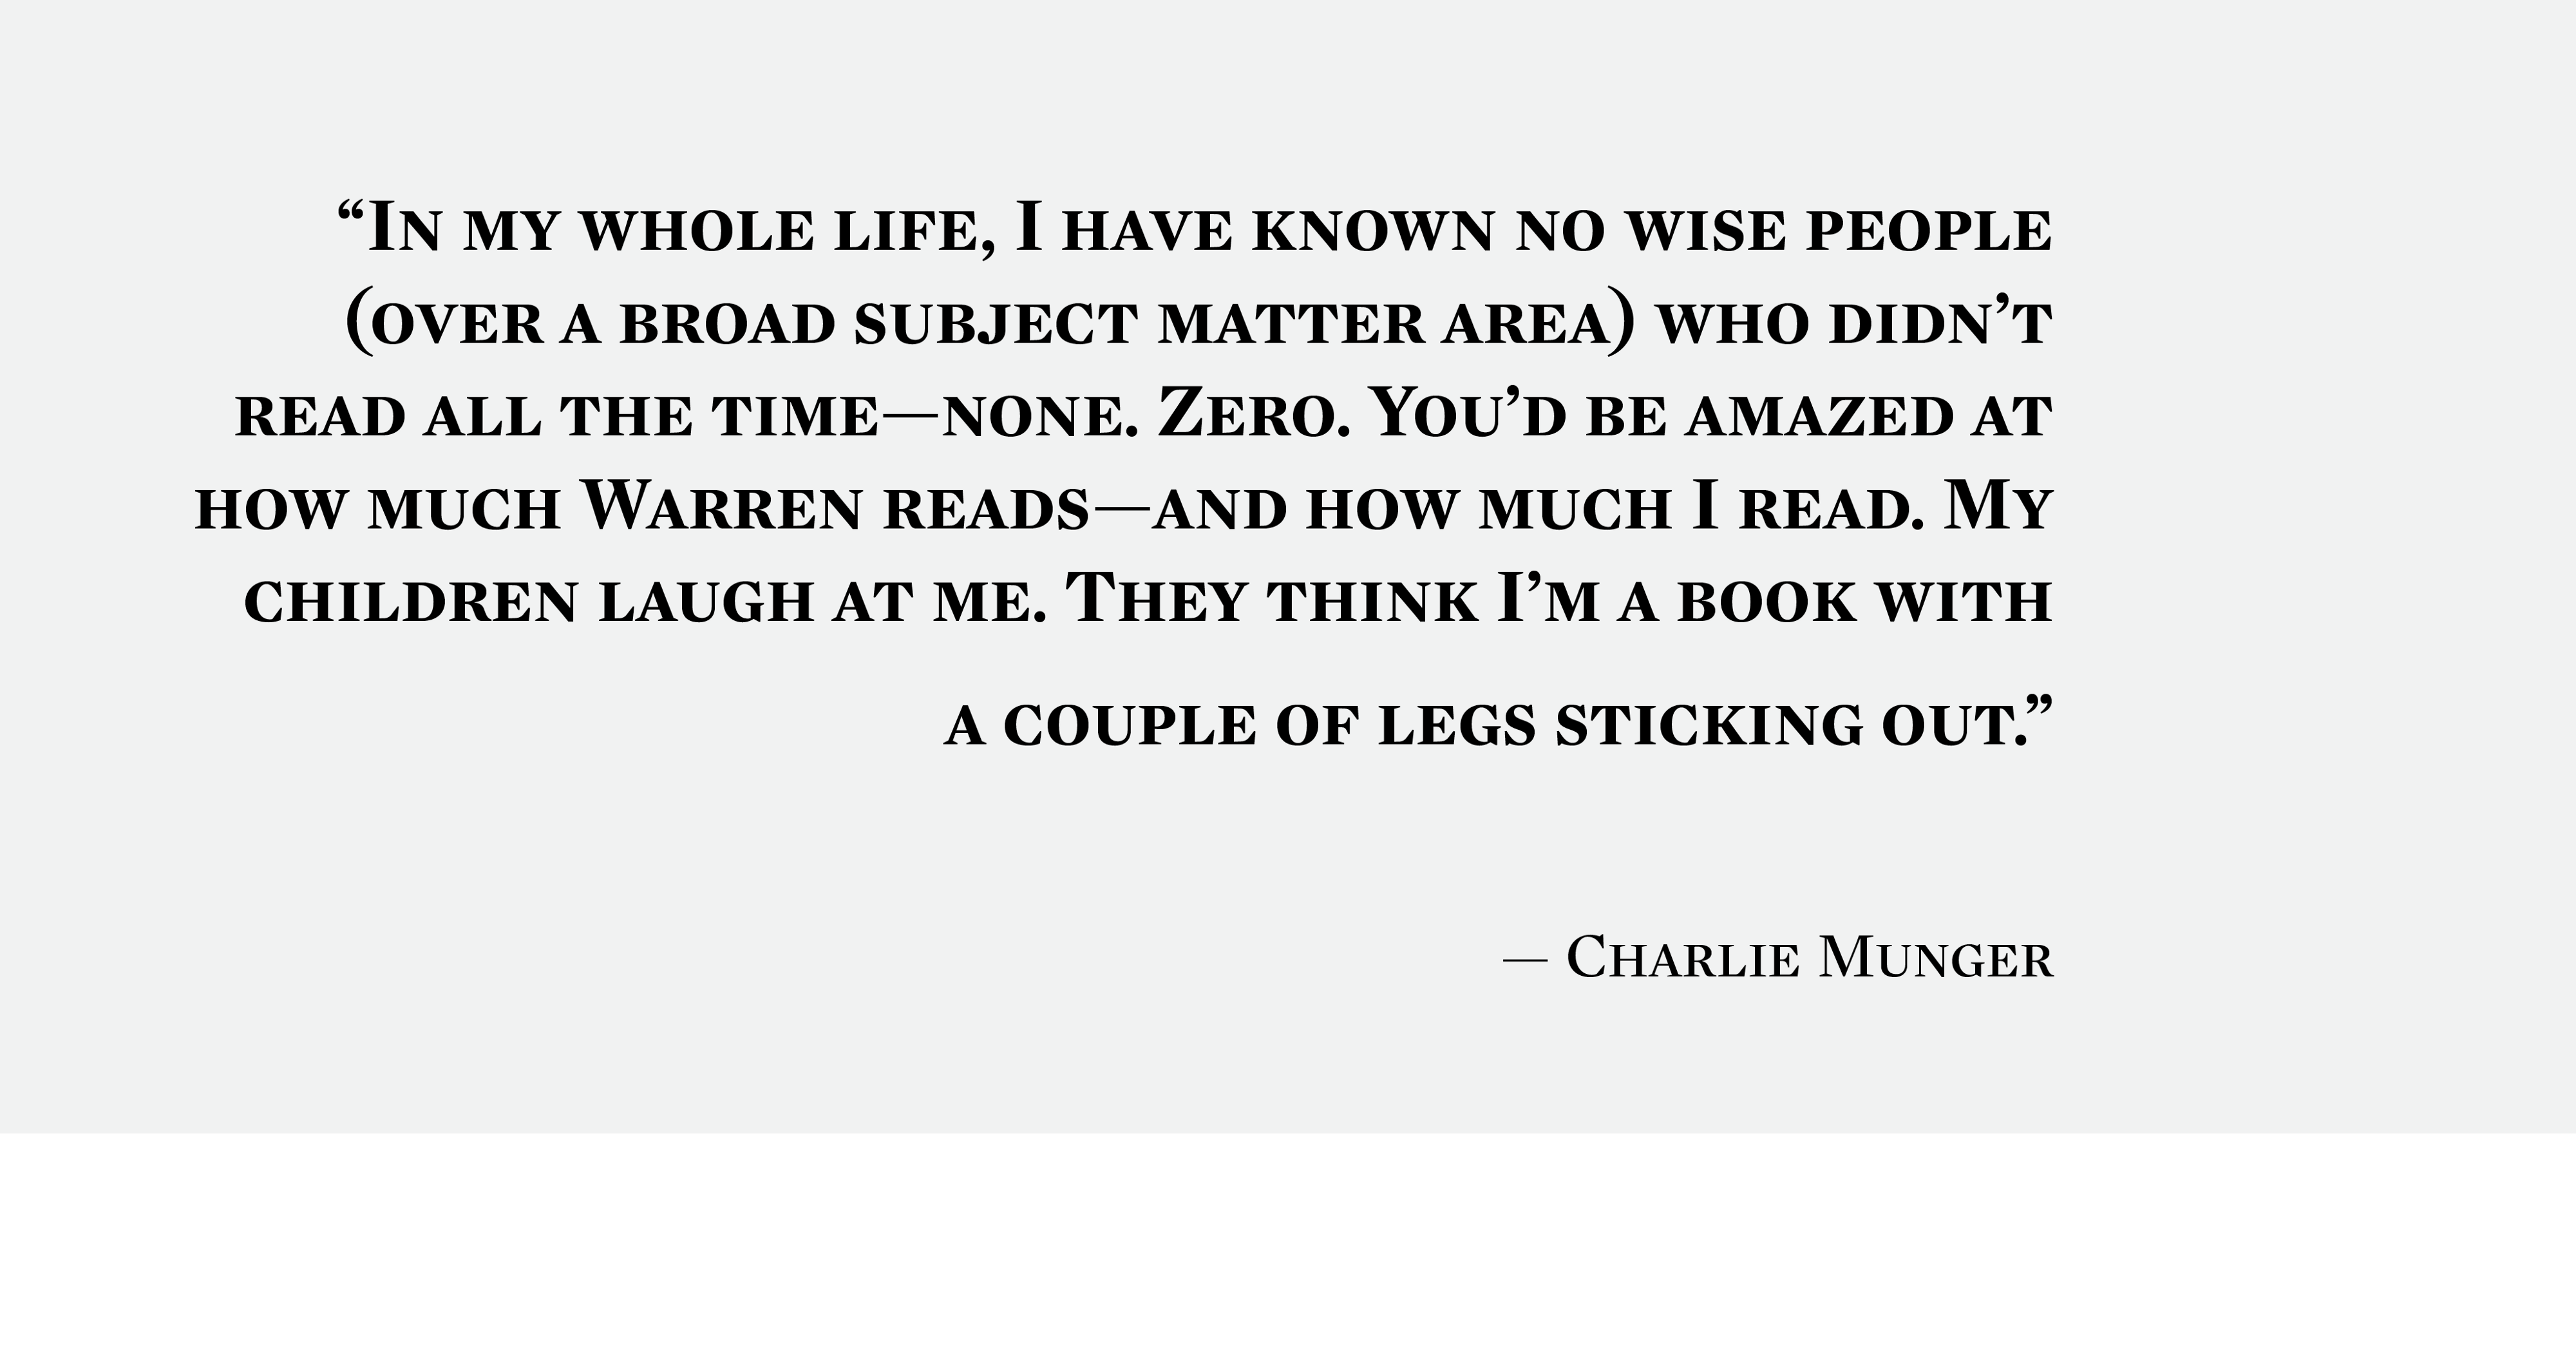 39 Book Recommendations From Billionaire Charlie Munger that